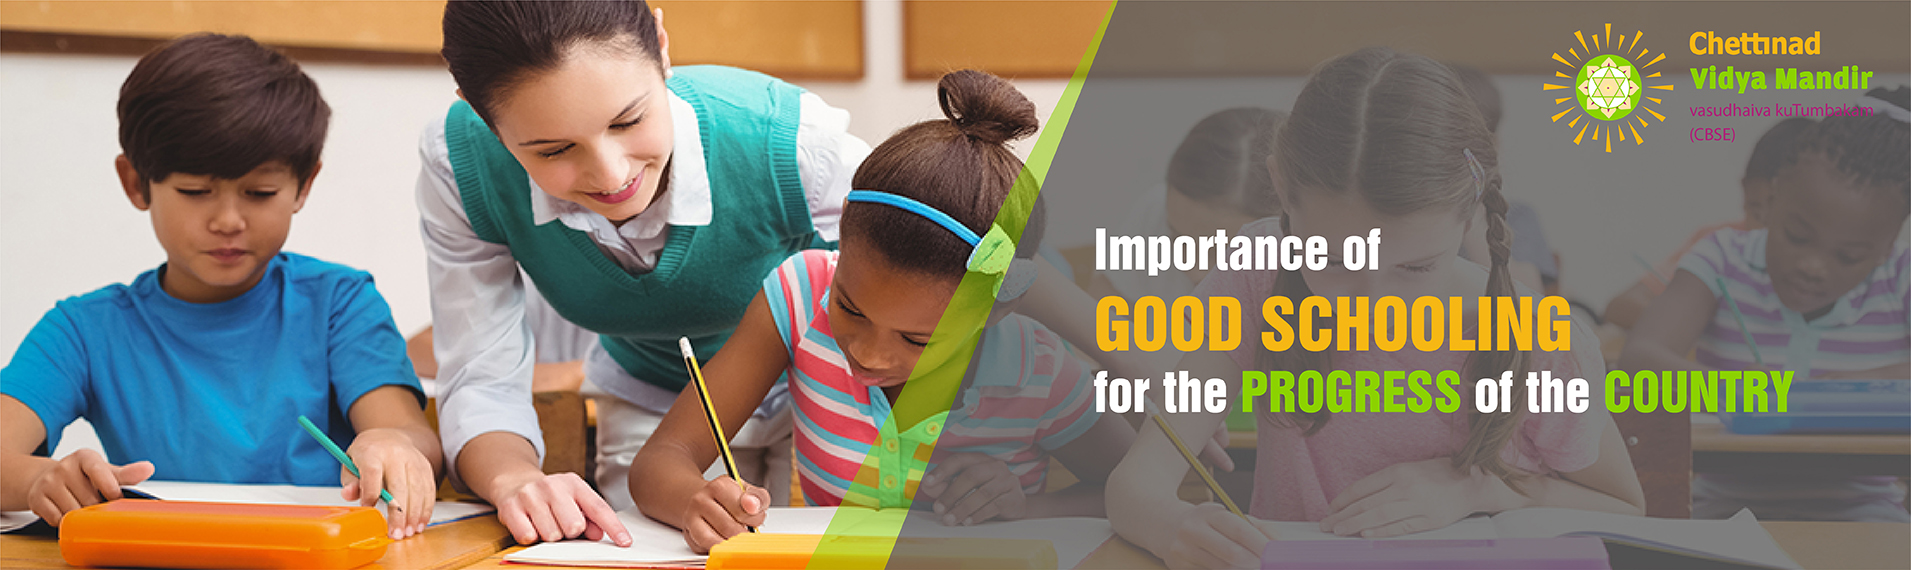 Importance of Good Schooling